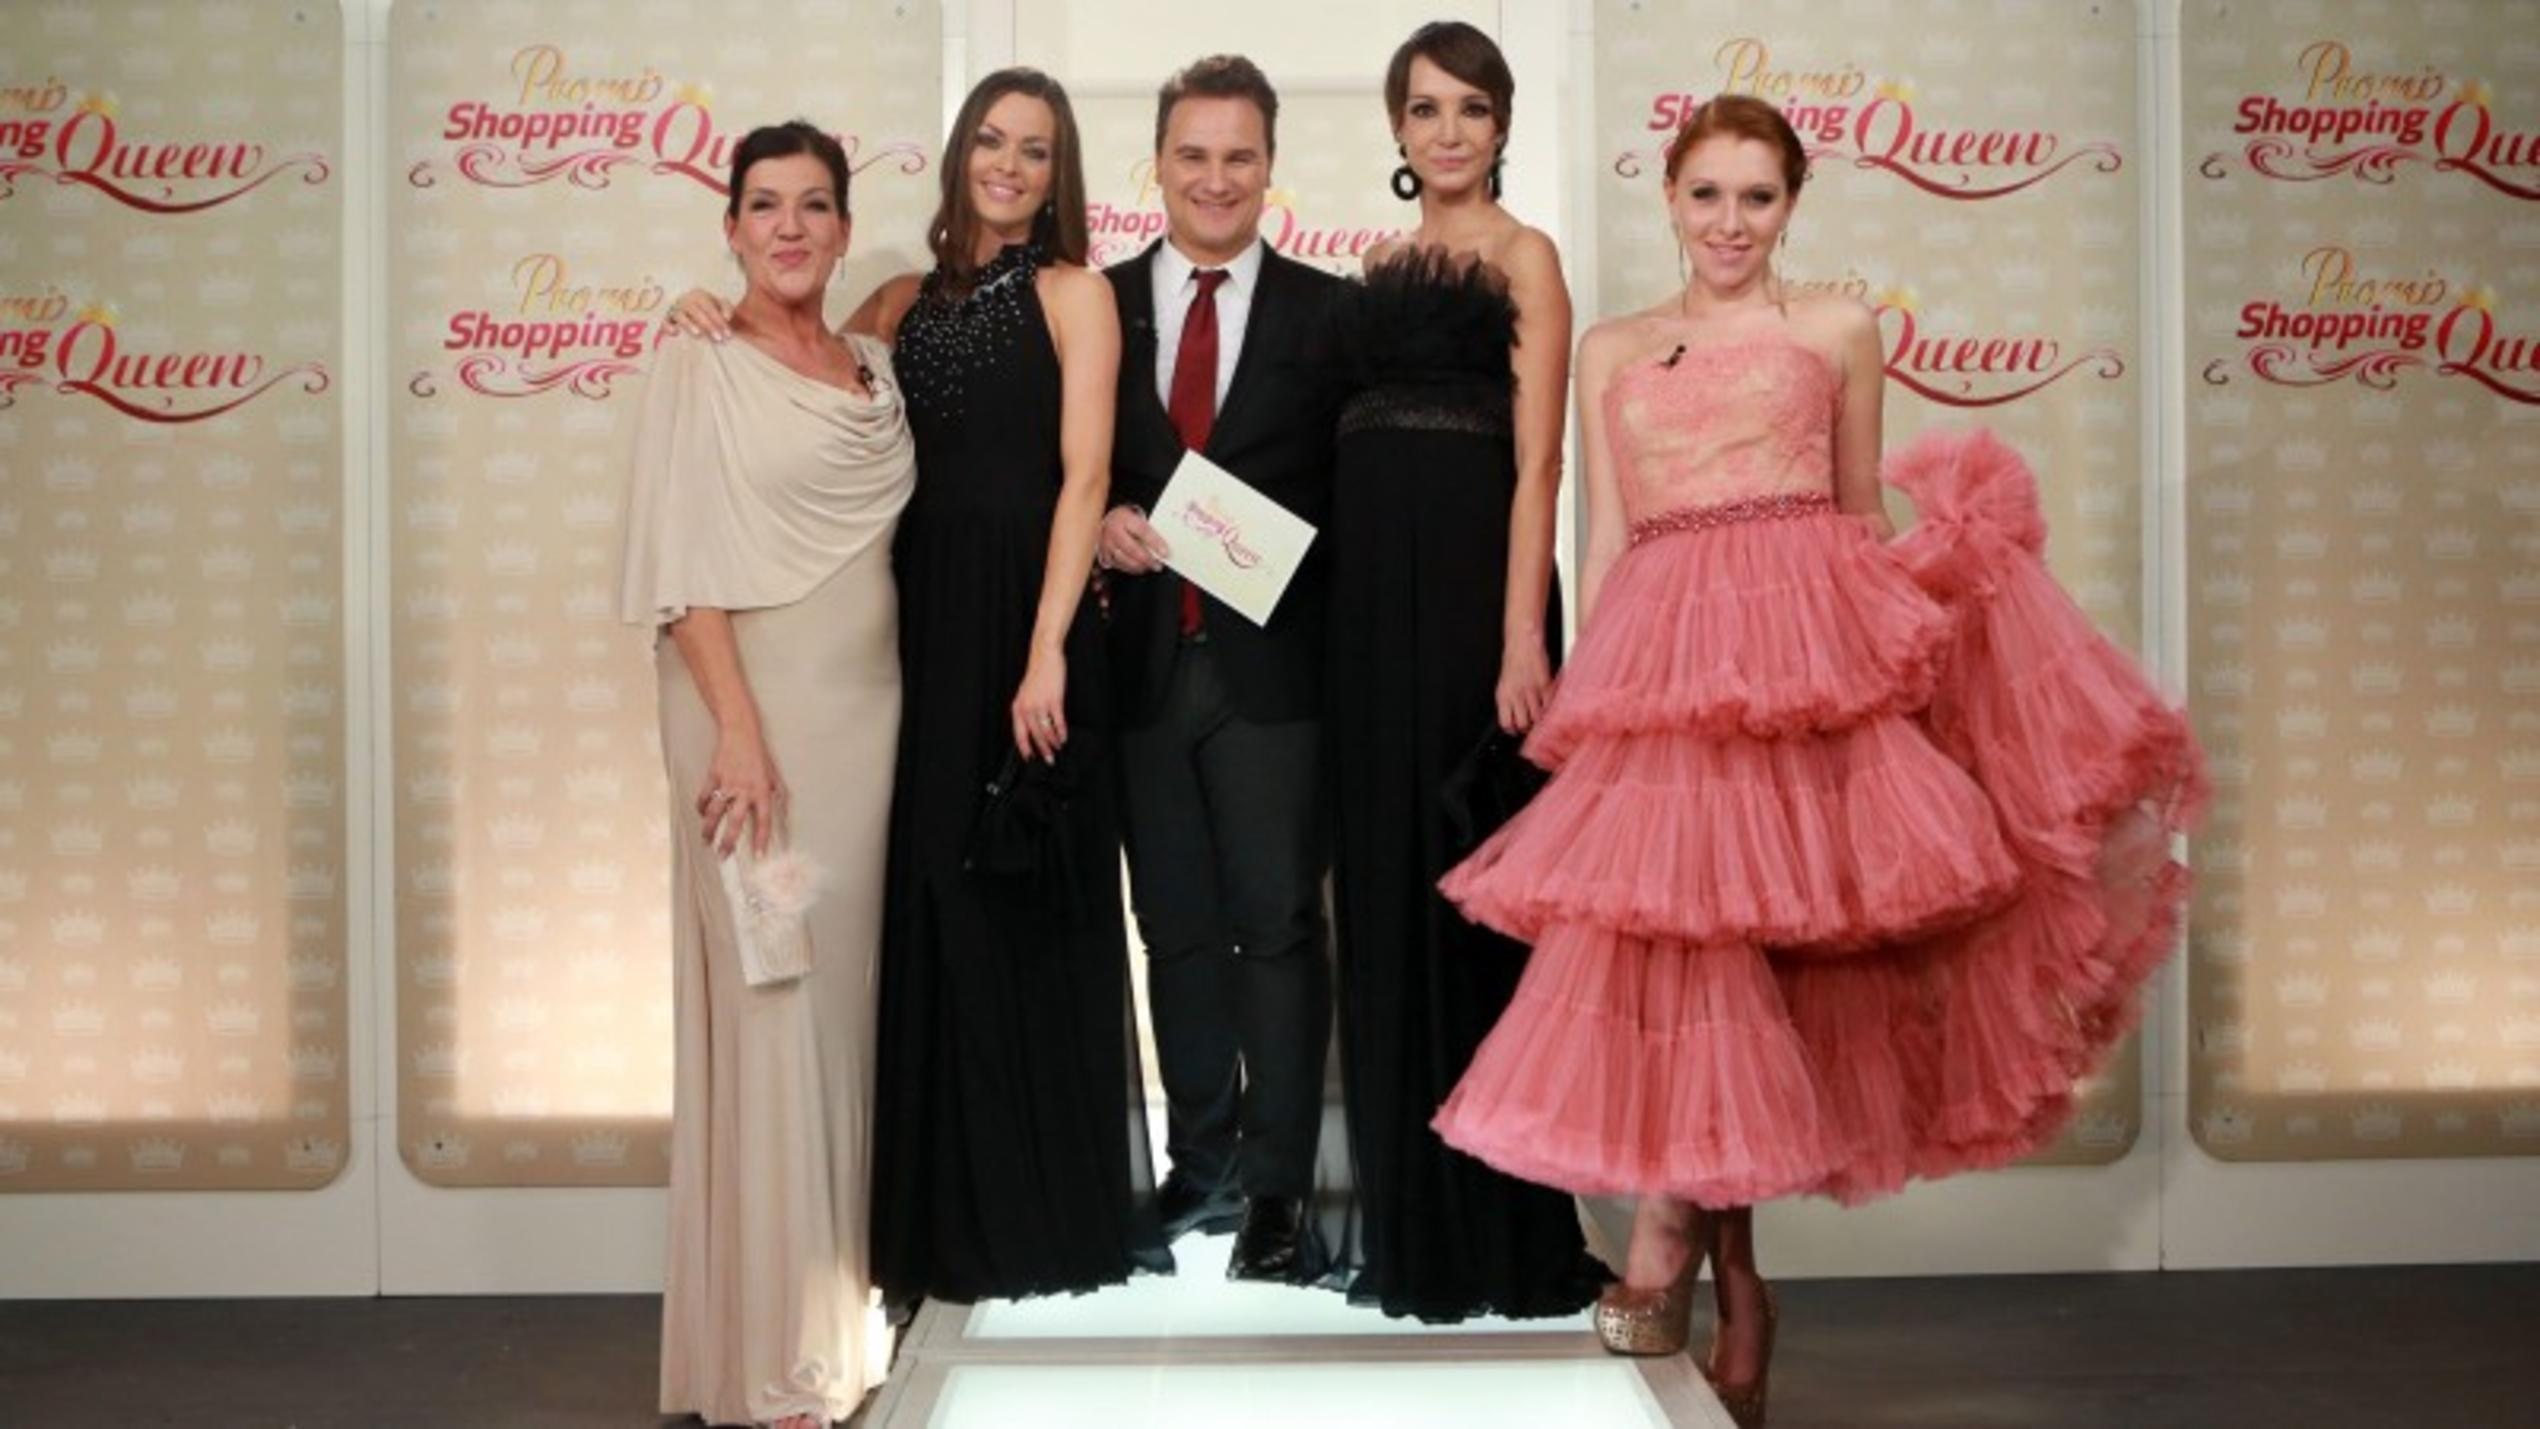 Promi Shopping Queen Berlin Katy Karrenbauer, Kate Hall, Guido Maria Kretschmer, Anouschka Renzi, Georgina Bülowius